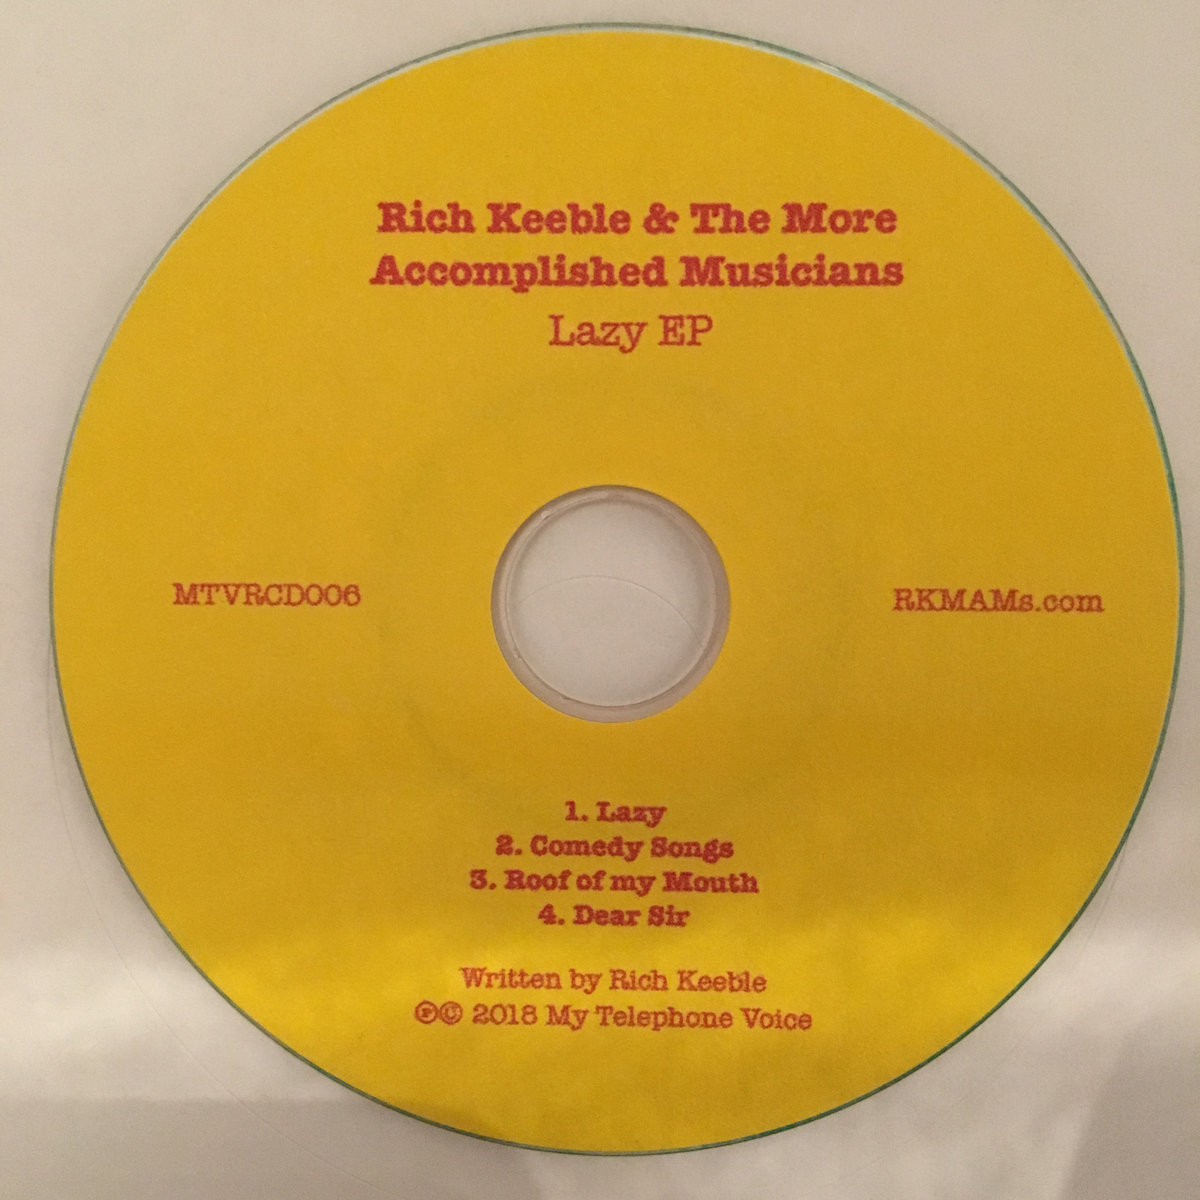 Comedy Songs | Rich Keeble & The More Accomplished Musicians